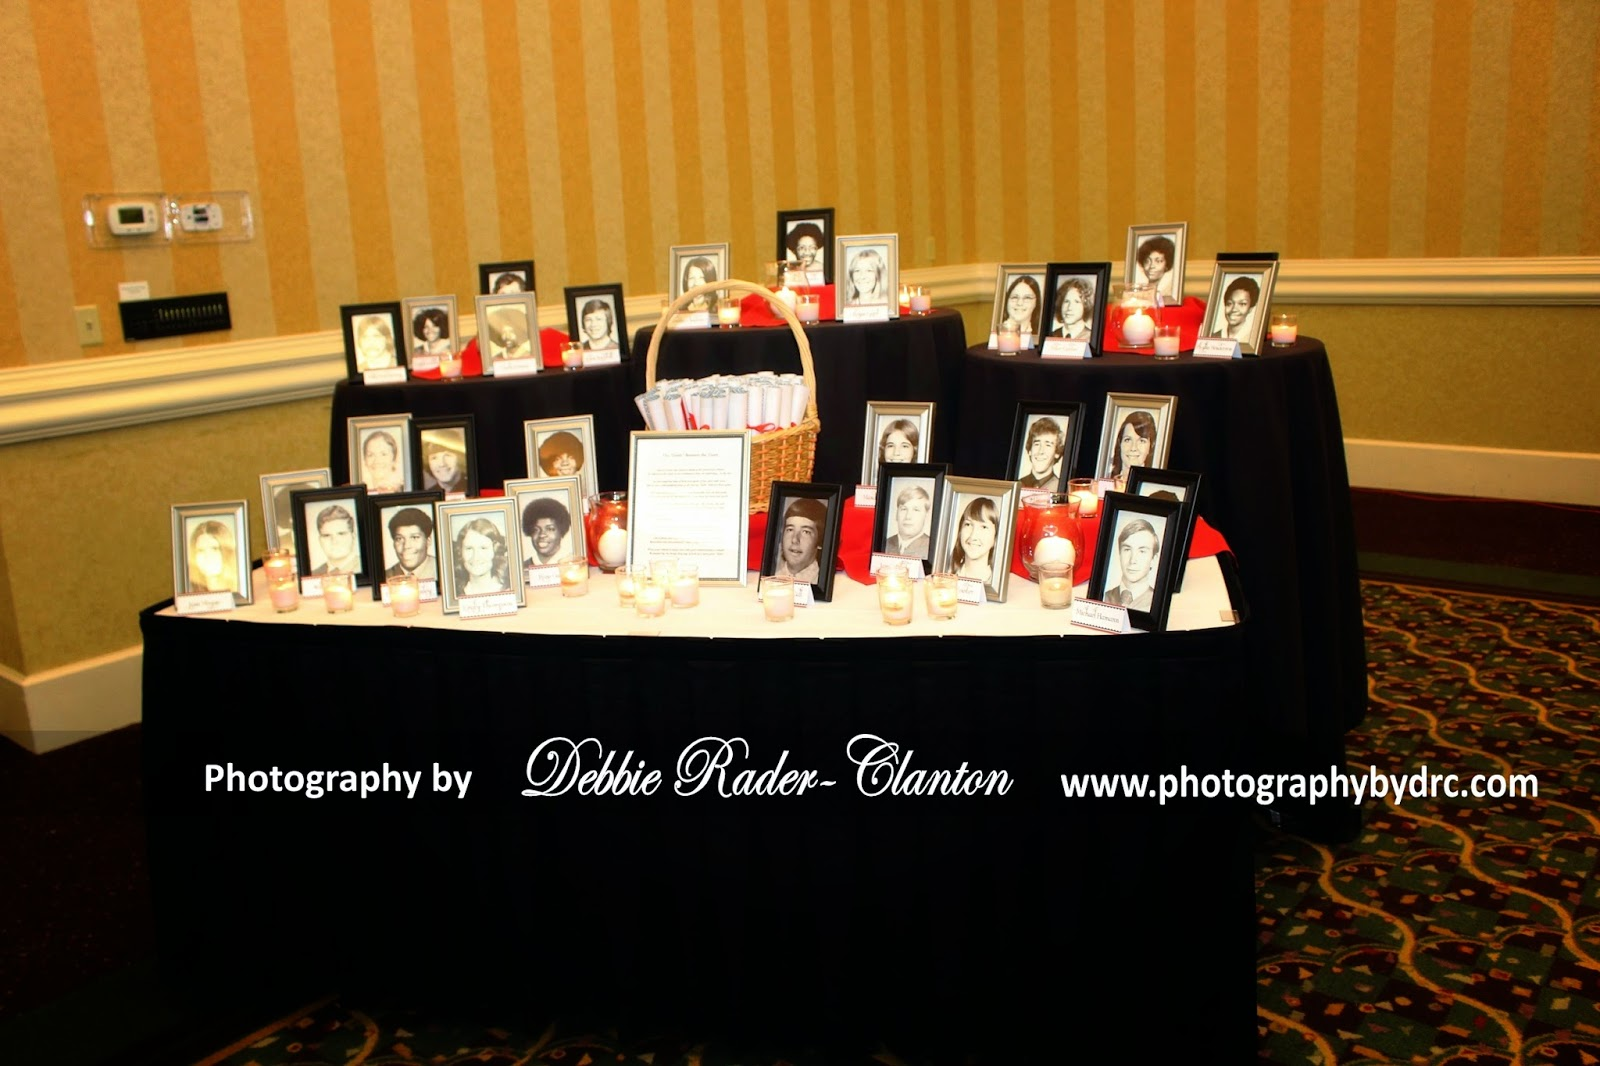 Class Reunion Memorial Table Ideas 1000 images about class reunion on pinterest reunions a website and to miss The Class Of 1974 Had A Great Turn Out Of Classmates That Came For The Reunion Laughter And Hugs Filled The Air As People Arrived The Tables Were